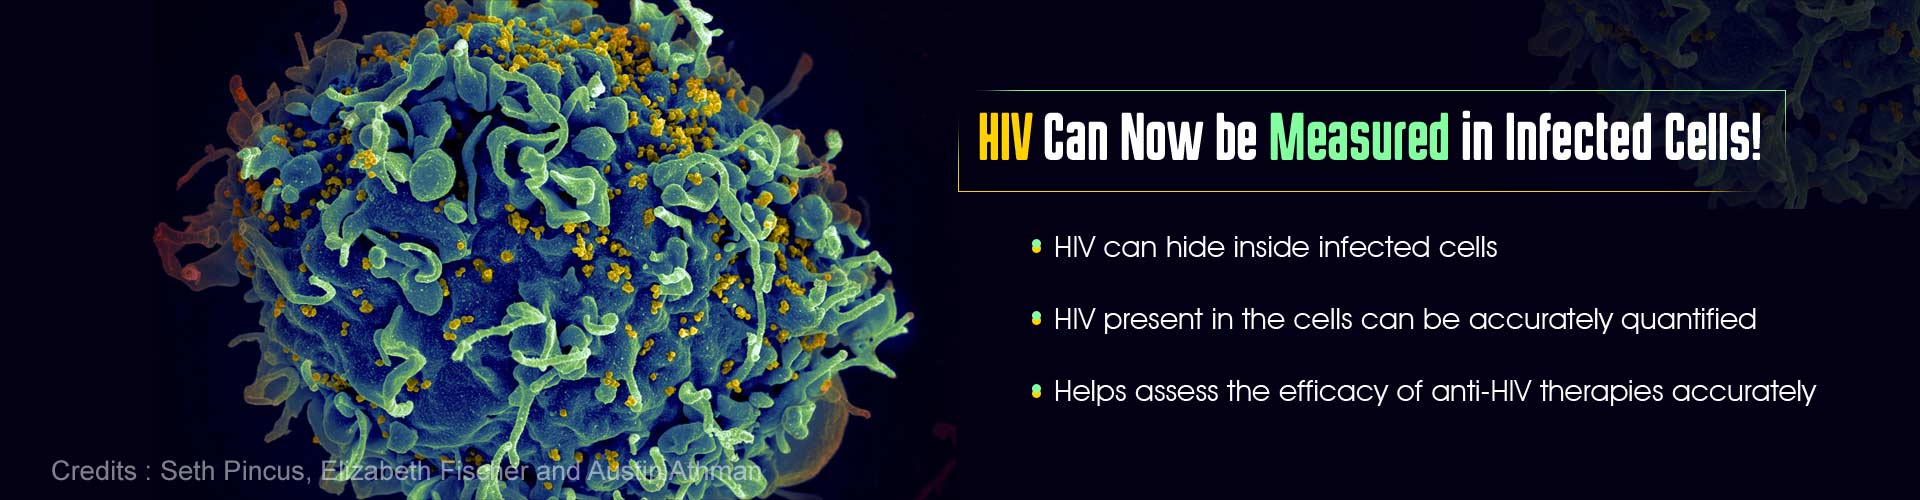 HIV Hiding Inside Patient's Cells Can Now be Measured Accurately